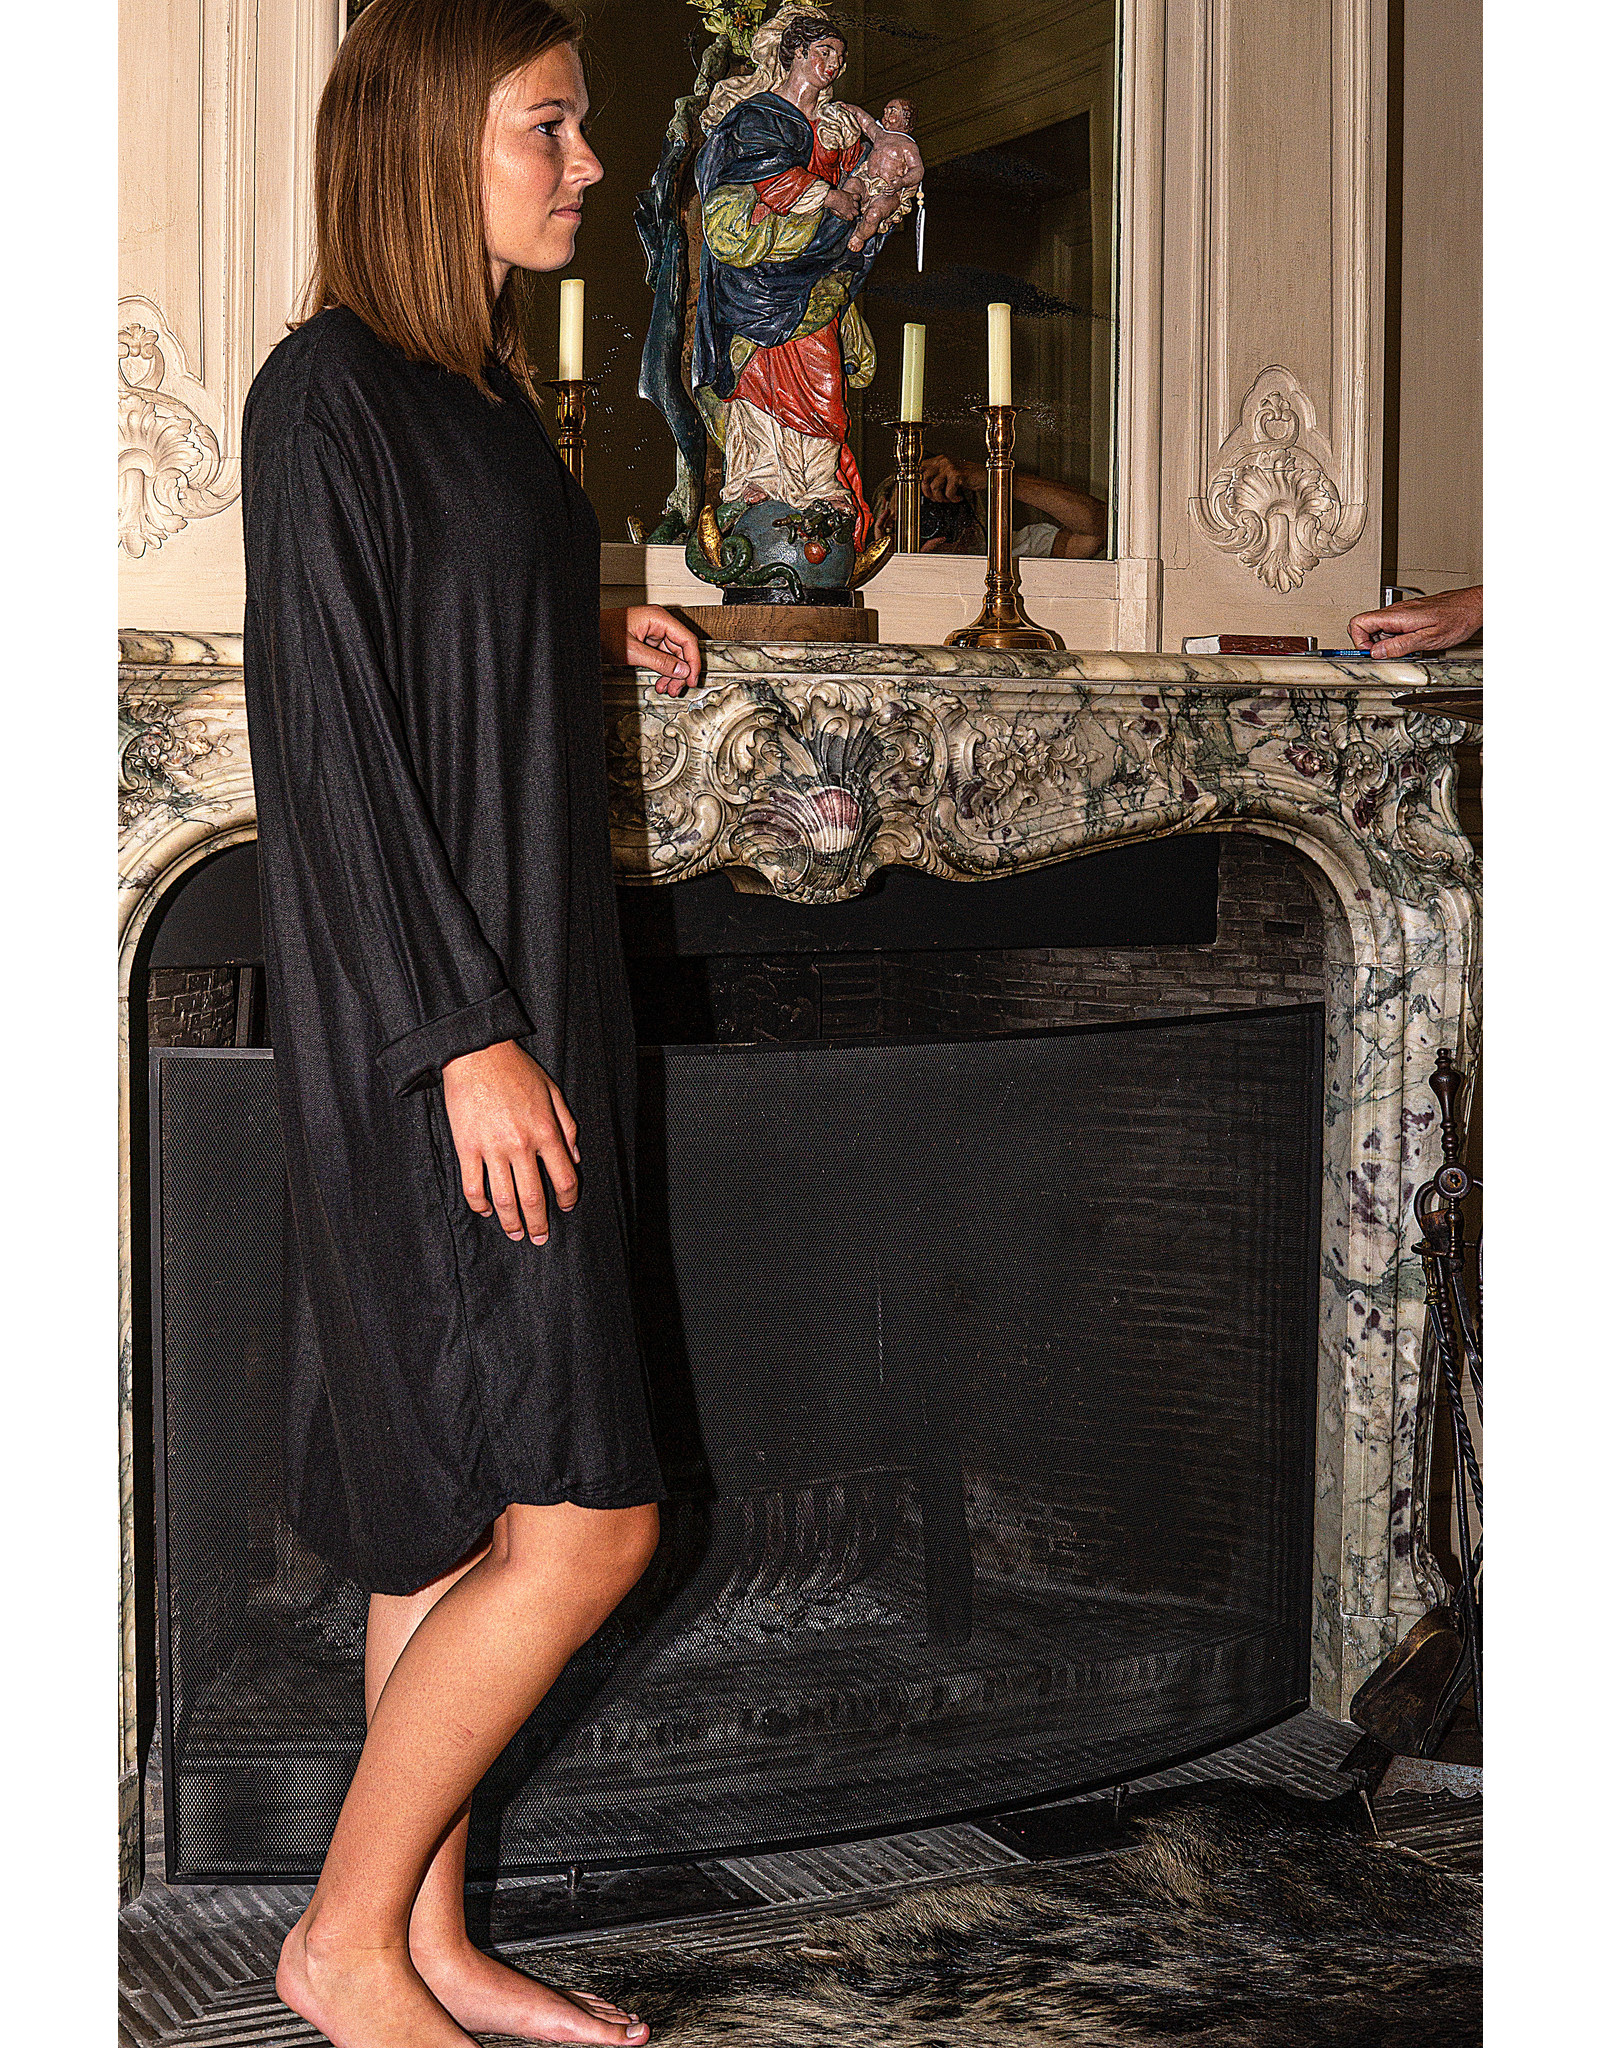 Dorélit Demi | Nightdress | Black